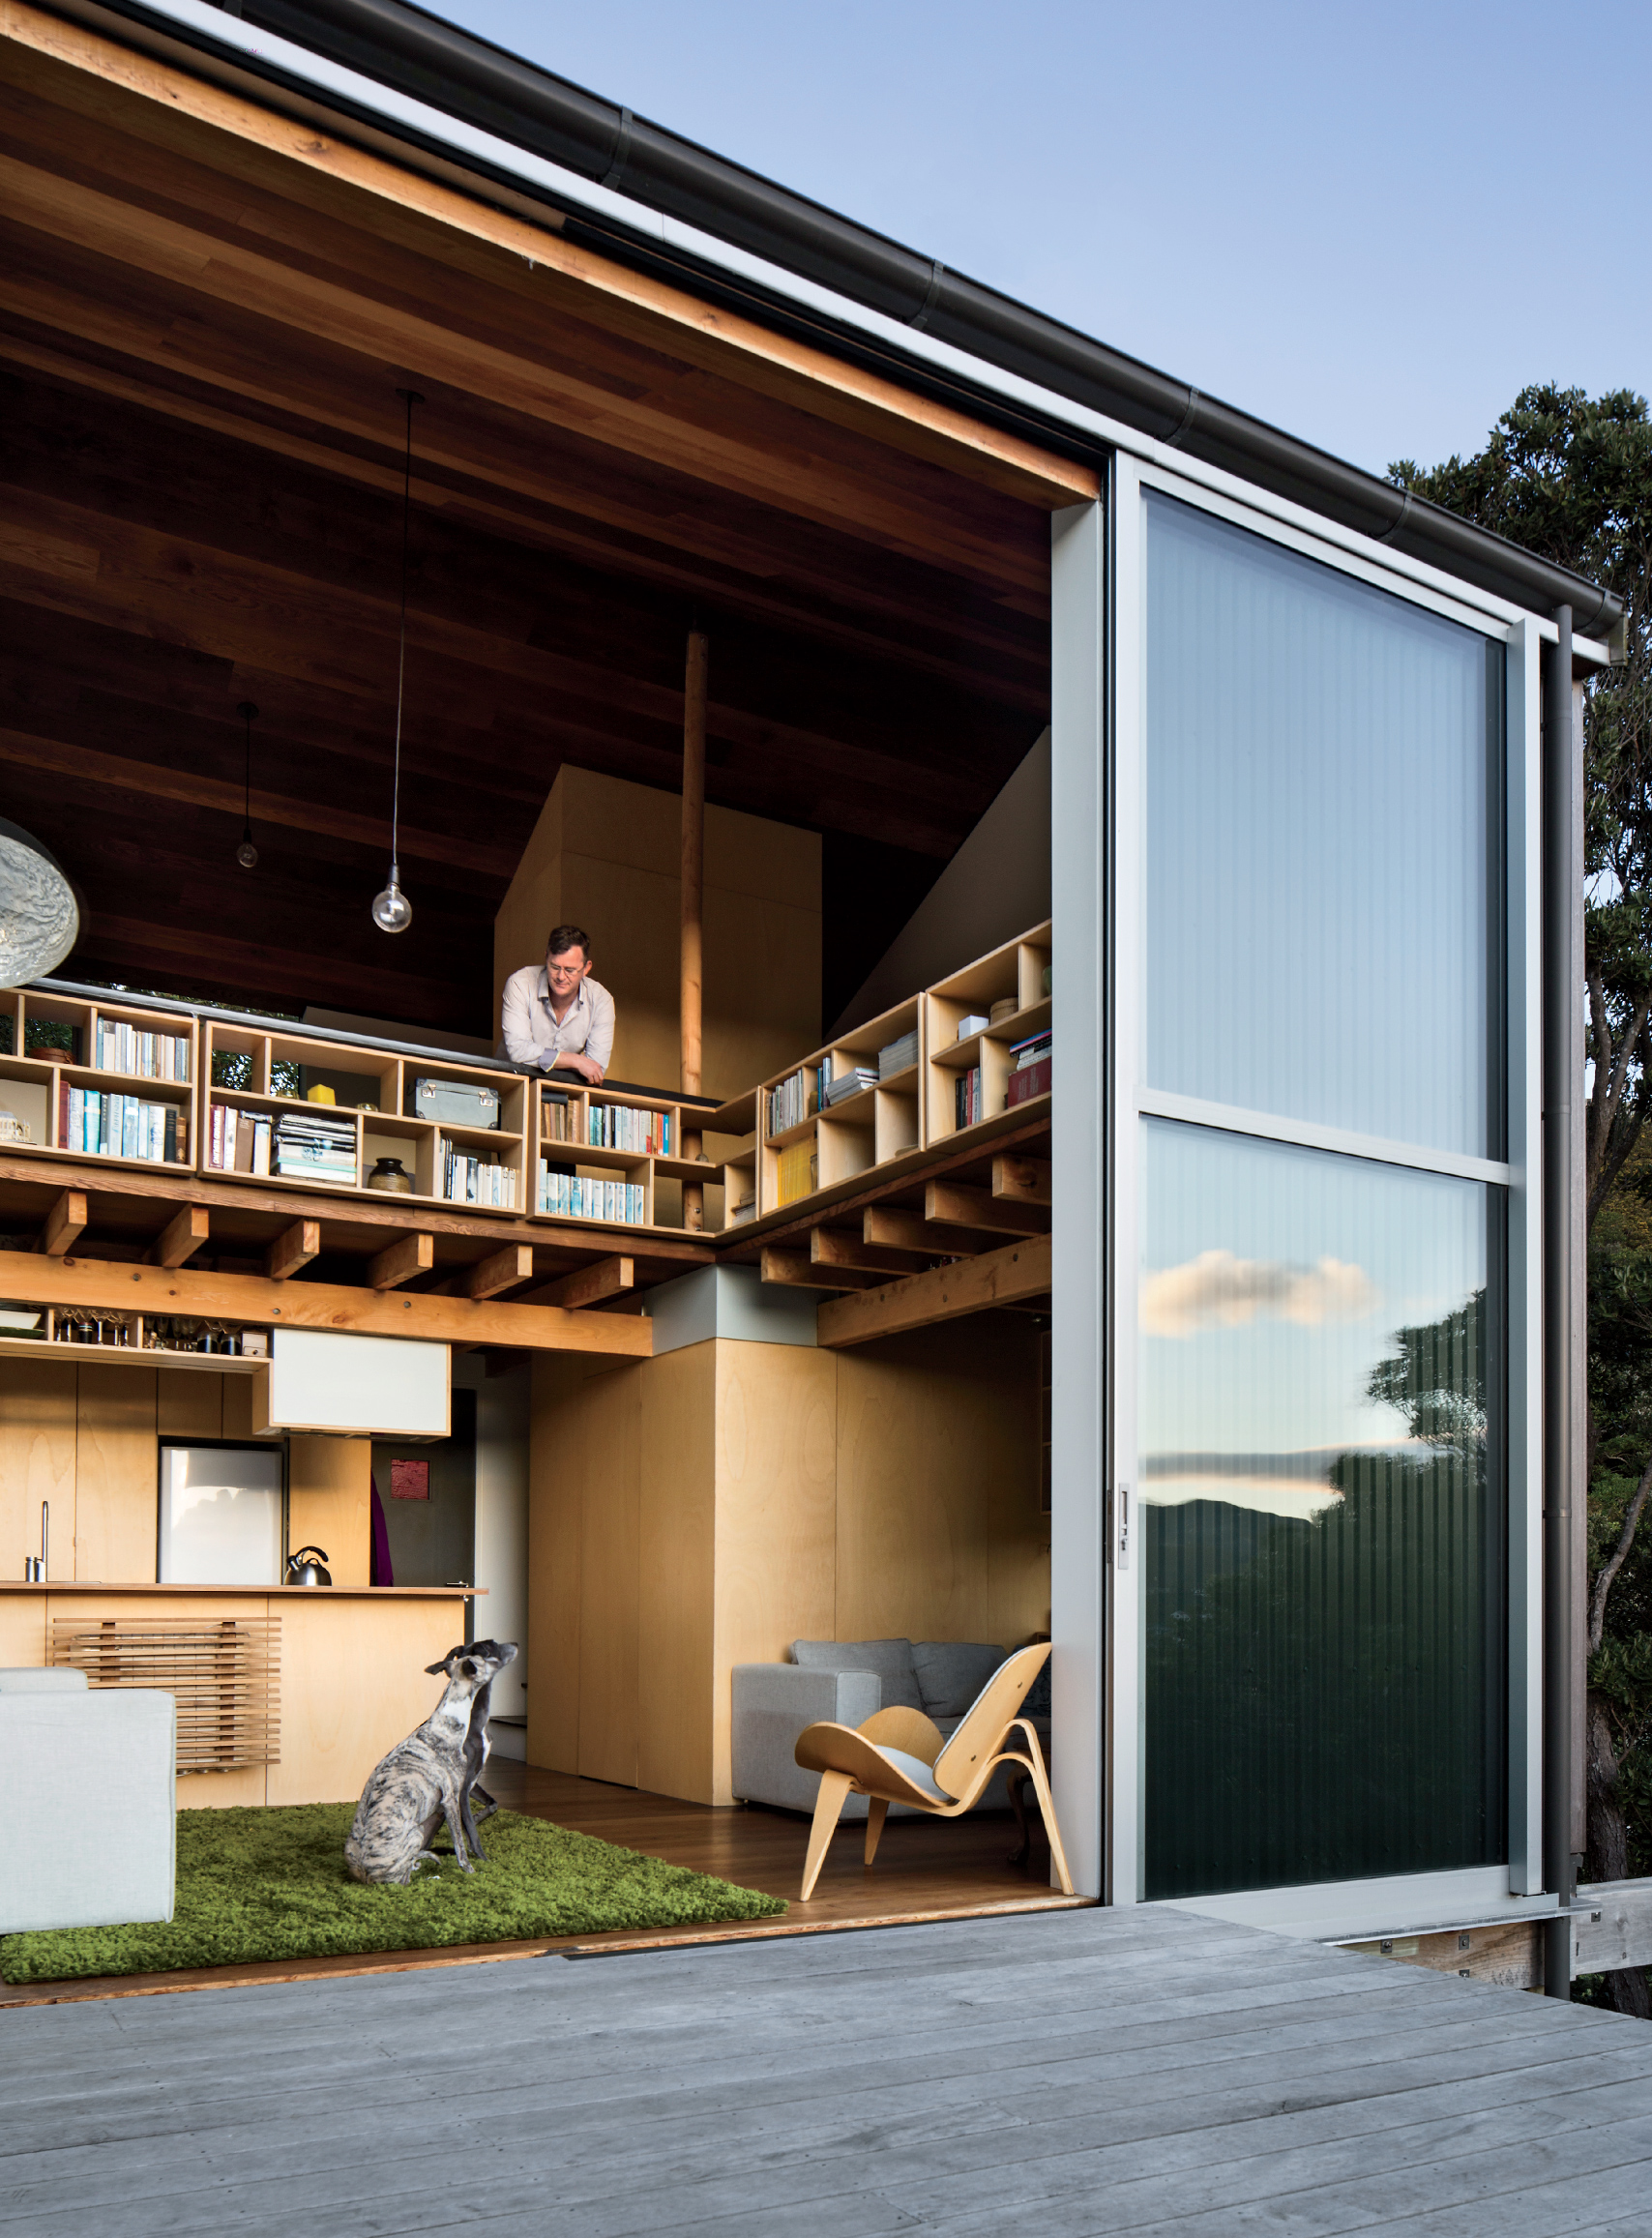 Modern small space in New Zealand with deck and lofted bedroom with shelving